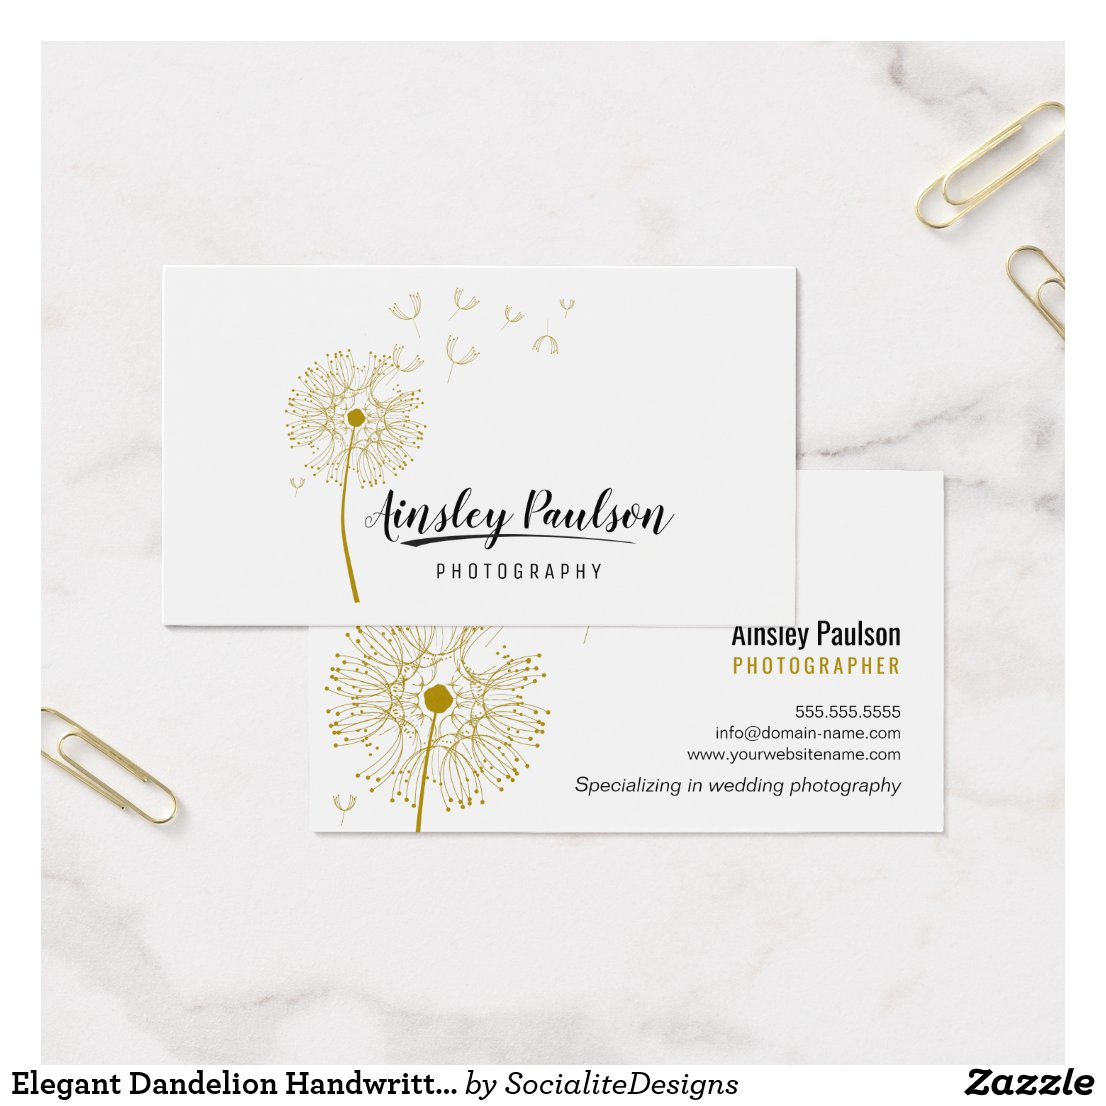 Elegant Dandelion Handwritten Script Calligraphy Business Card